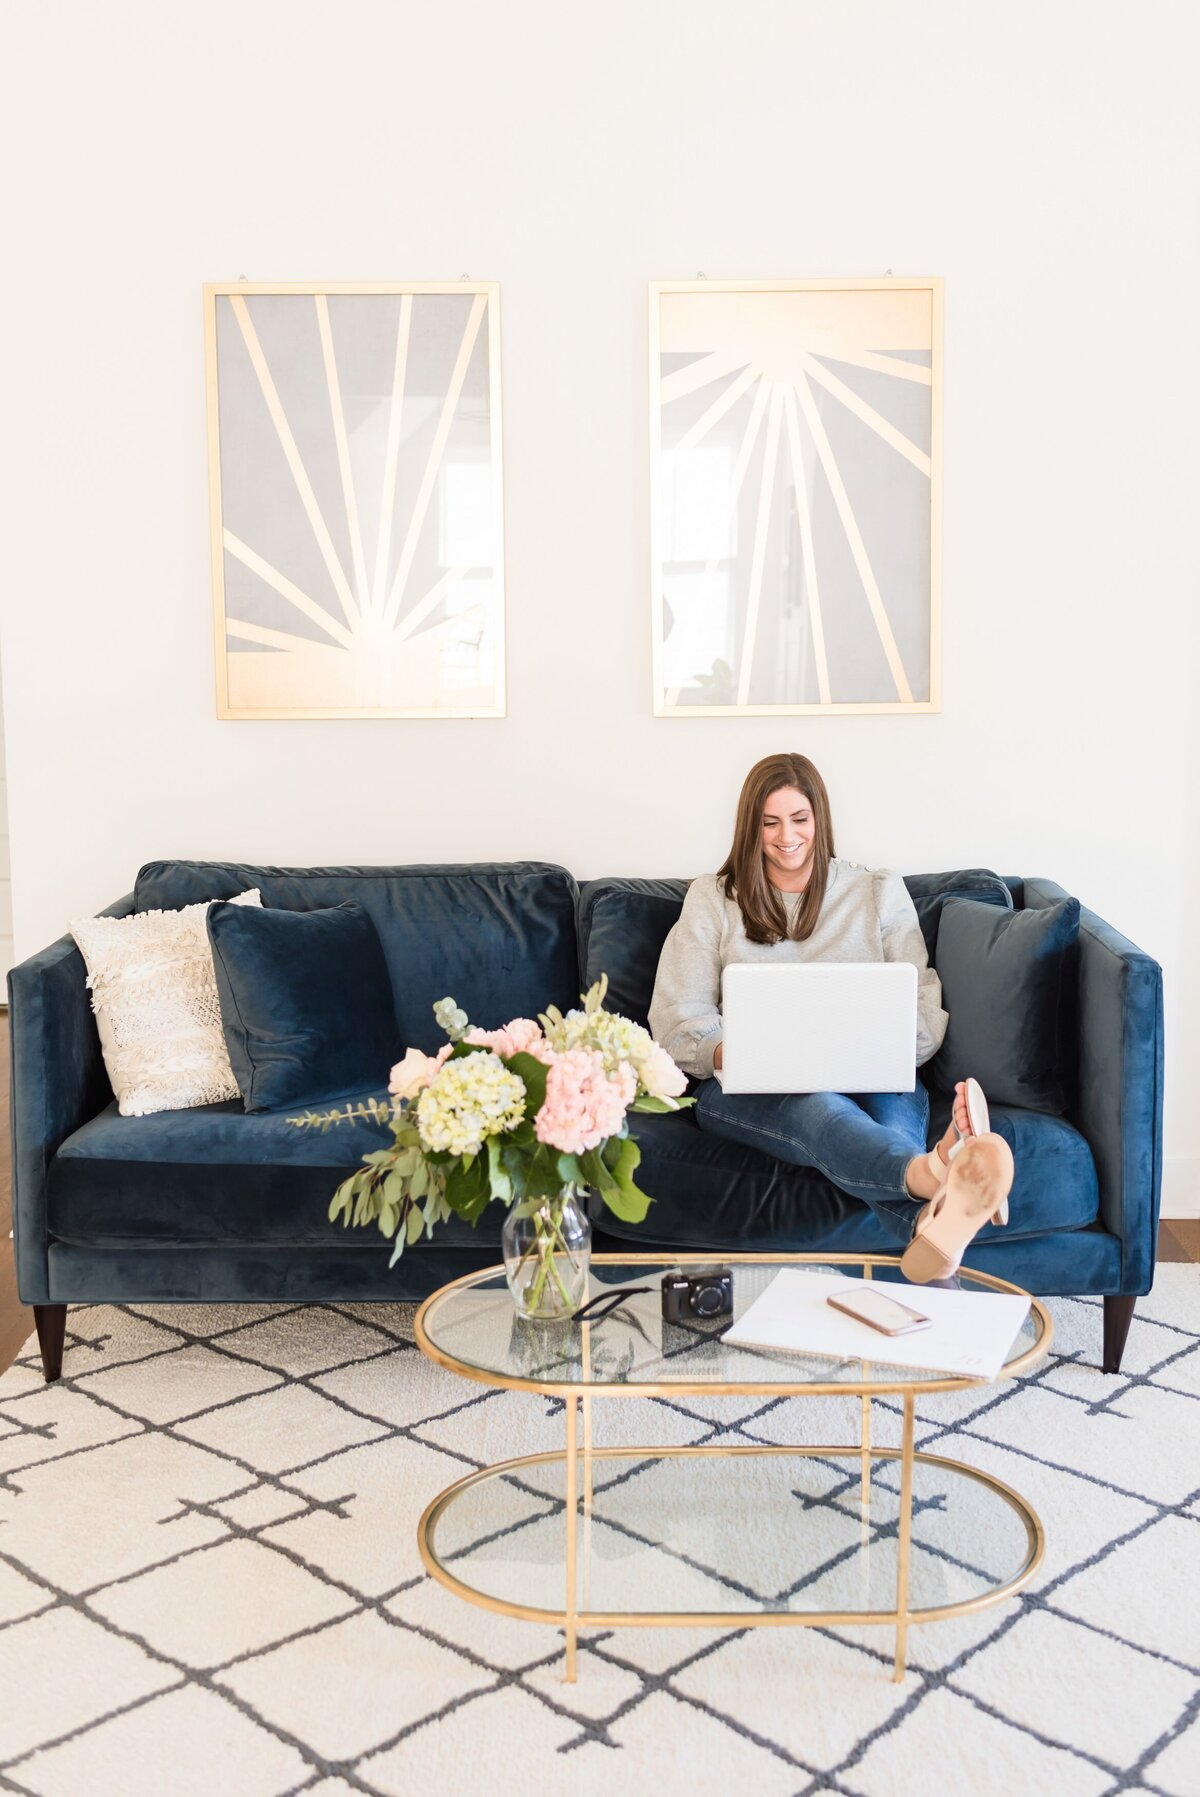 Woman working on her laptop in a Nashville Airbnb sitting on a blue velvet couch